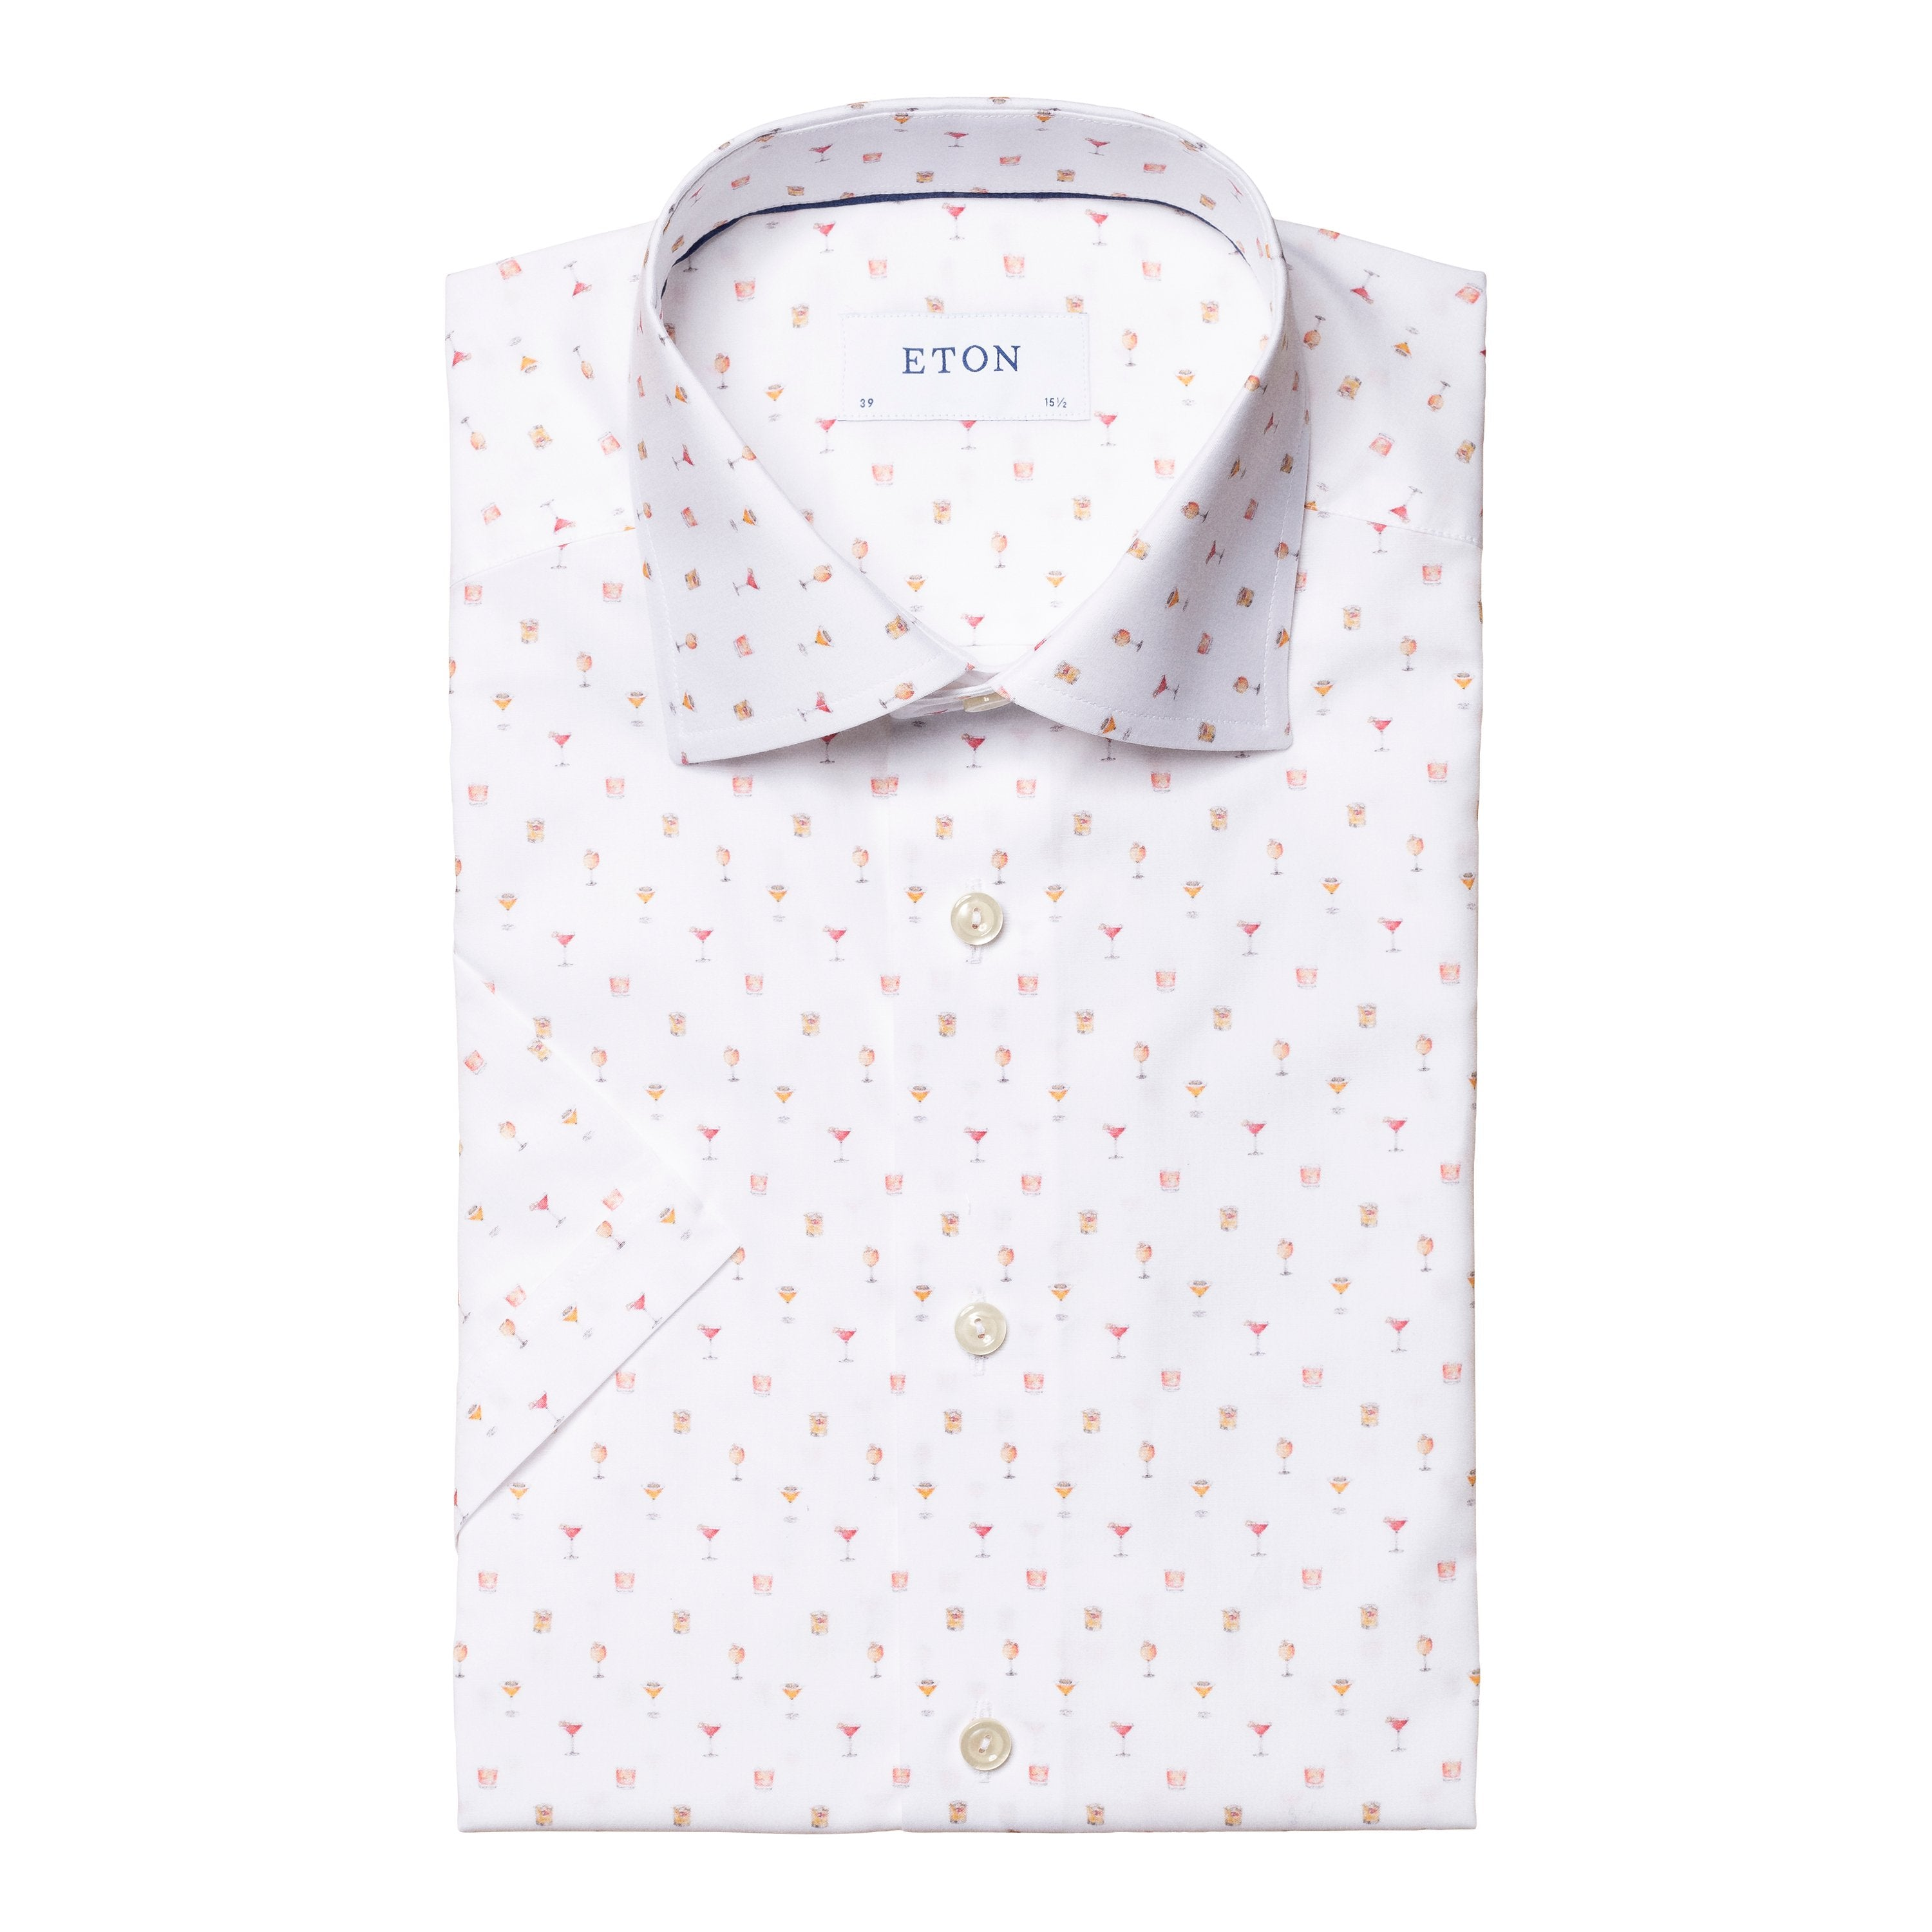 ETON - Cocktail Print Short Sleeve SLIM FIT Shirt - 10000226345